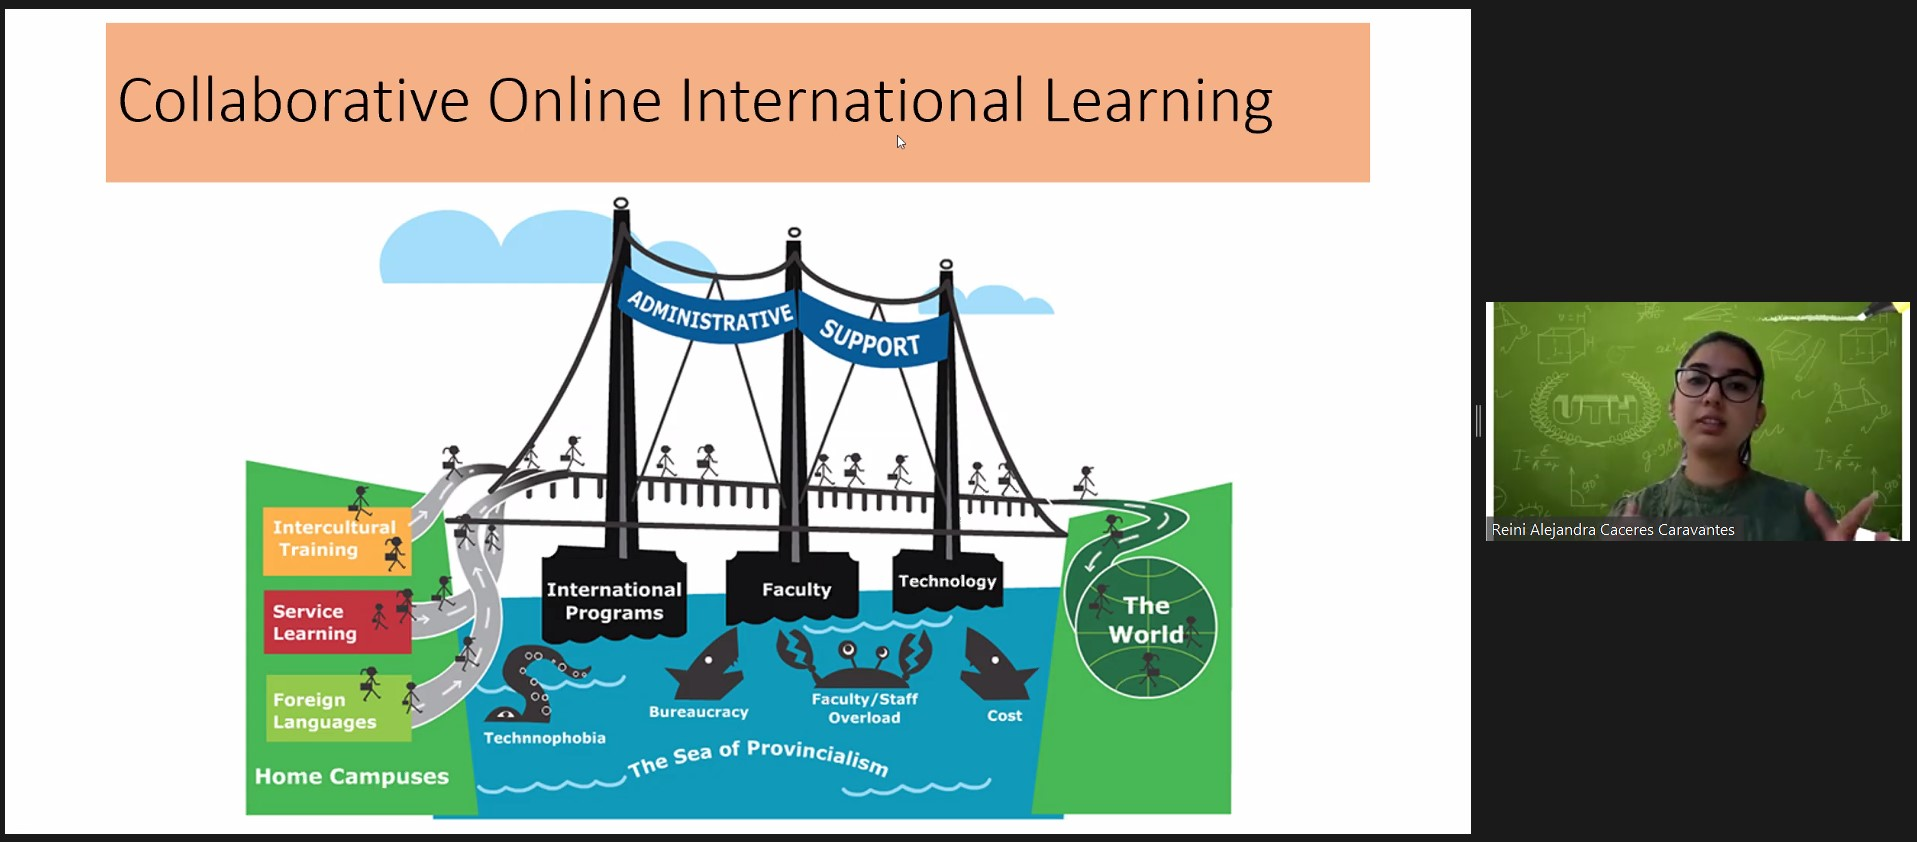 Collaborative online learning